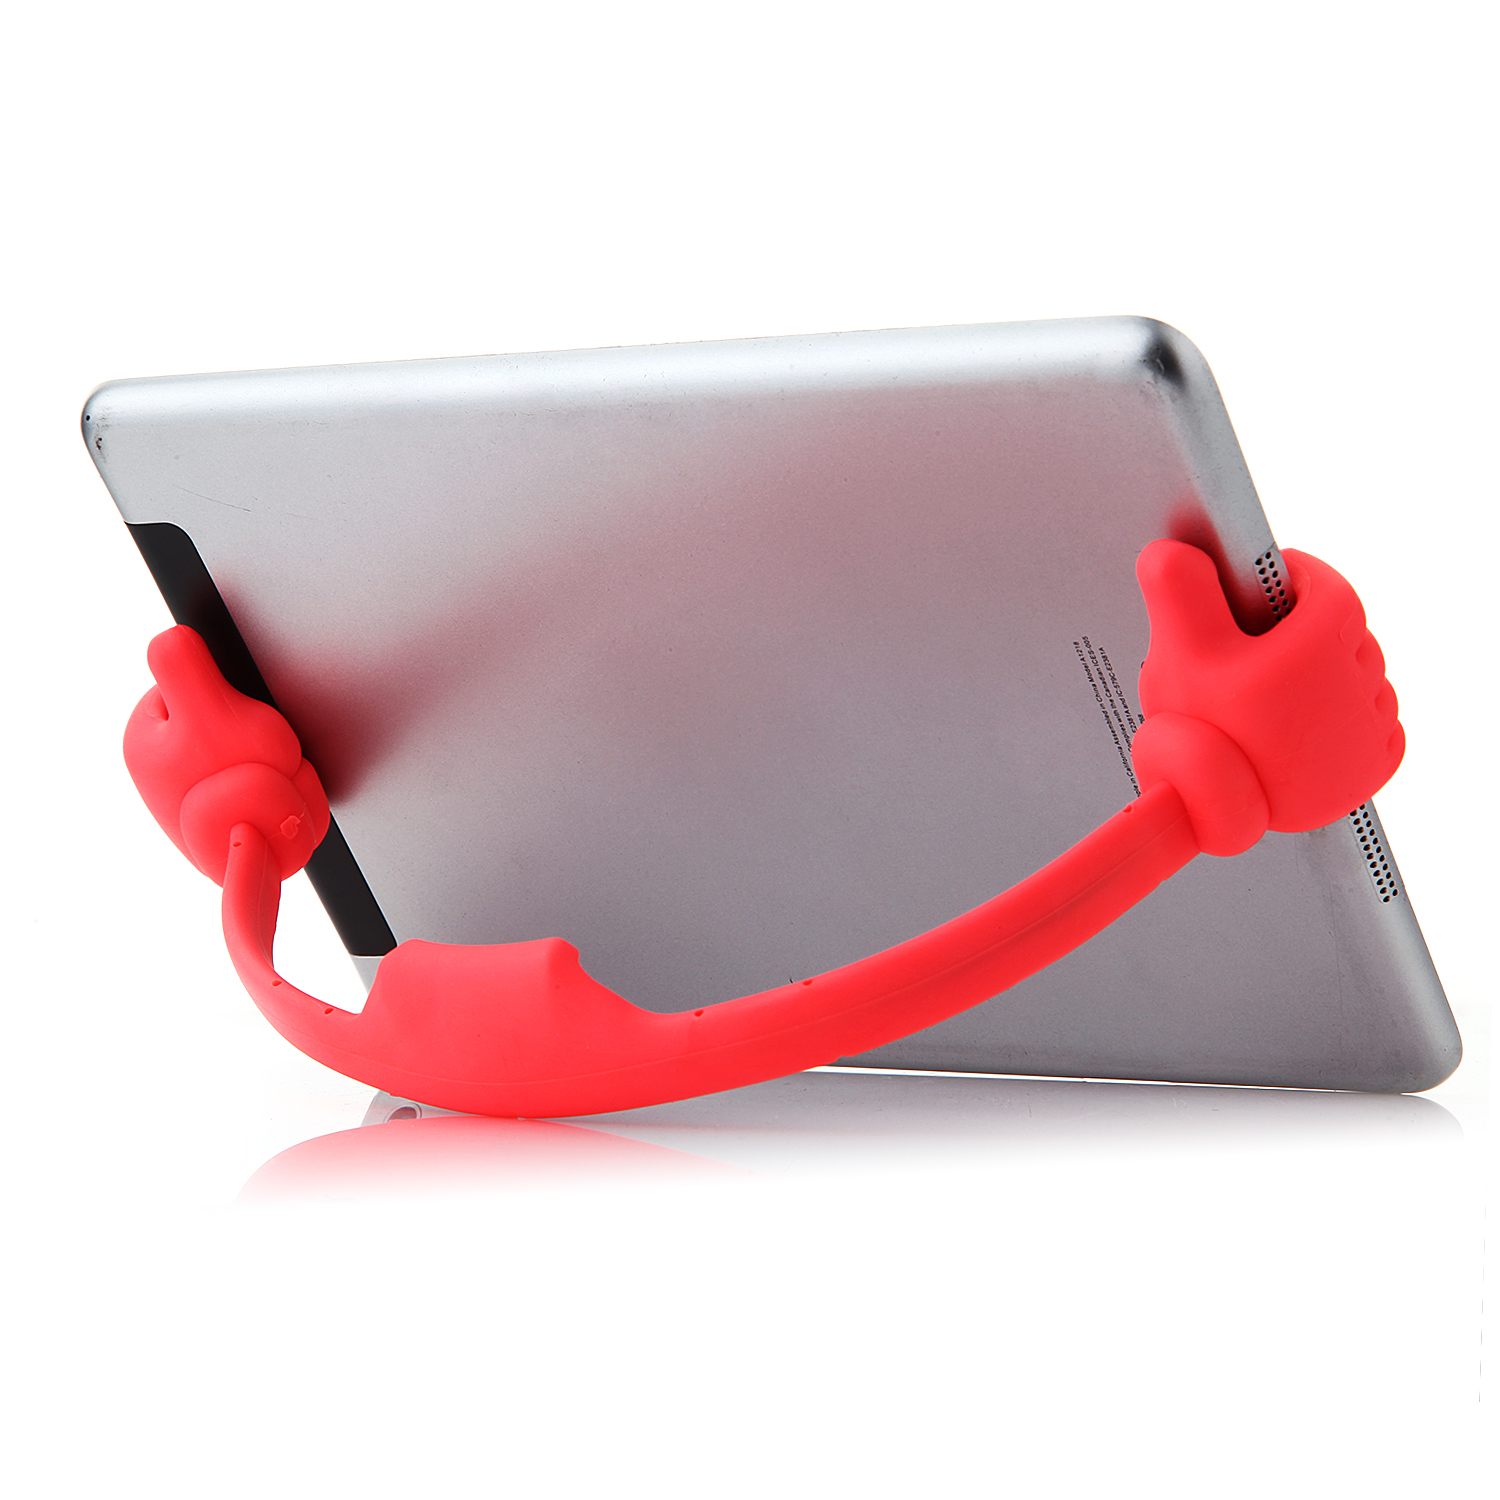 OK Stand Thumb OK Design Stand Holder for Smartphone and Tablet Red